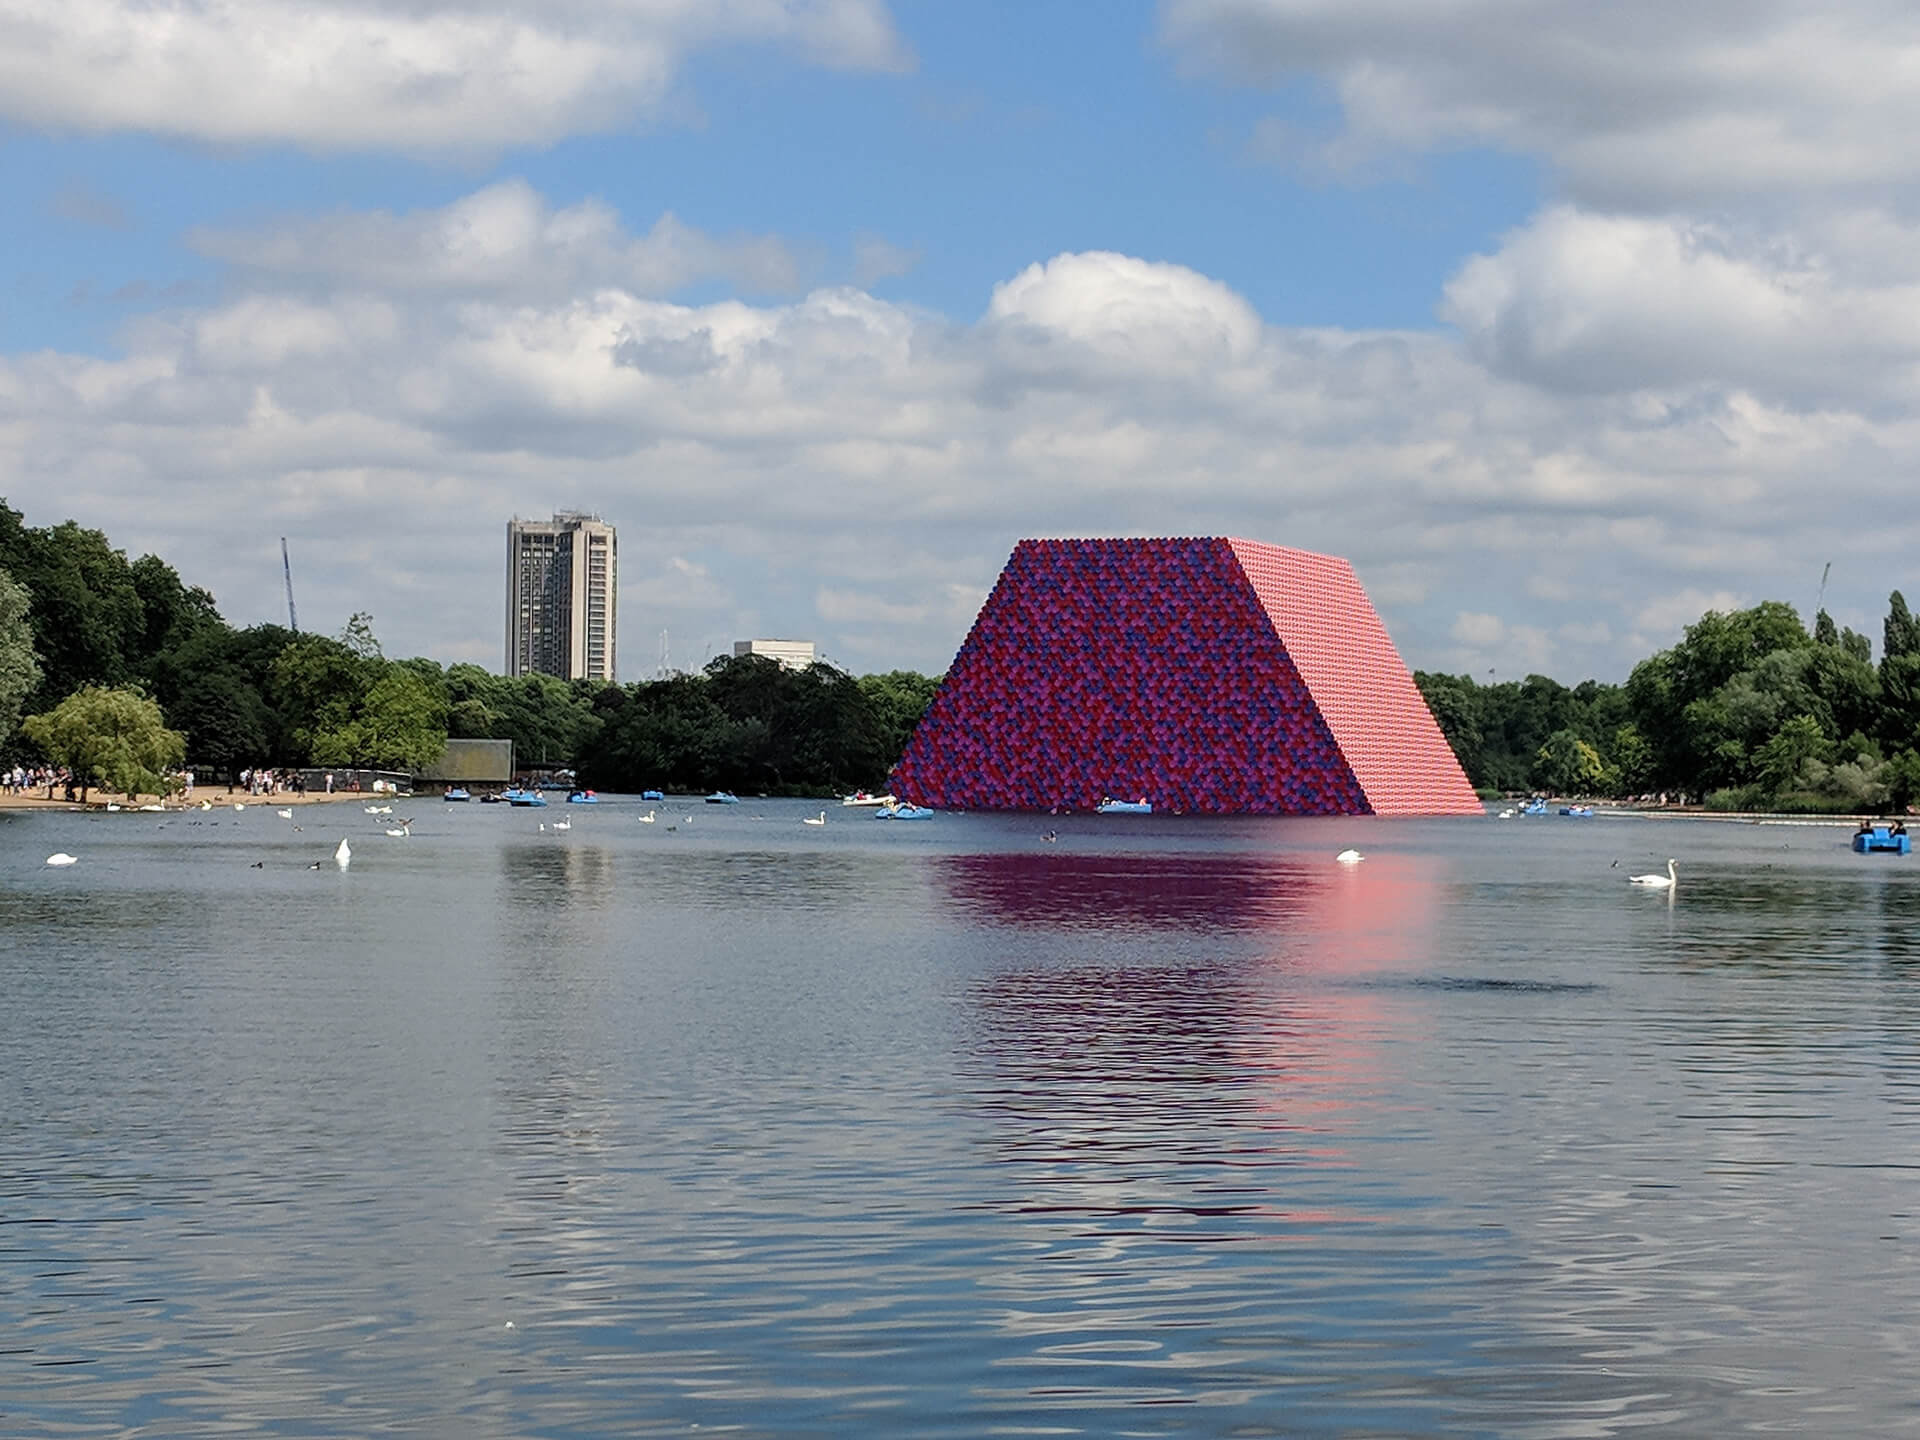 The London Mastaba by Christo and Jeanne-Claude | The London Mastaba | Christo and Jeanne-Claude| STIRworld